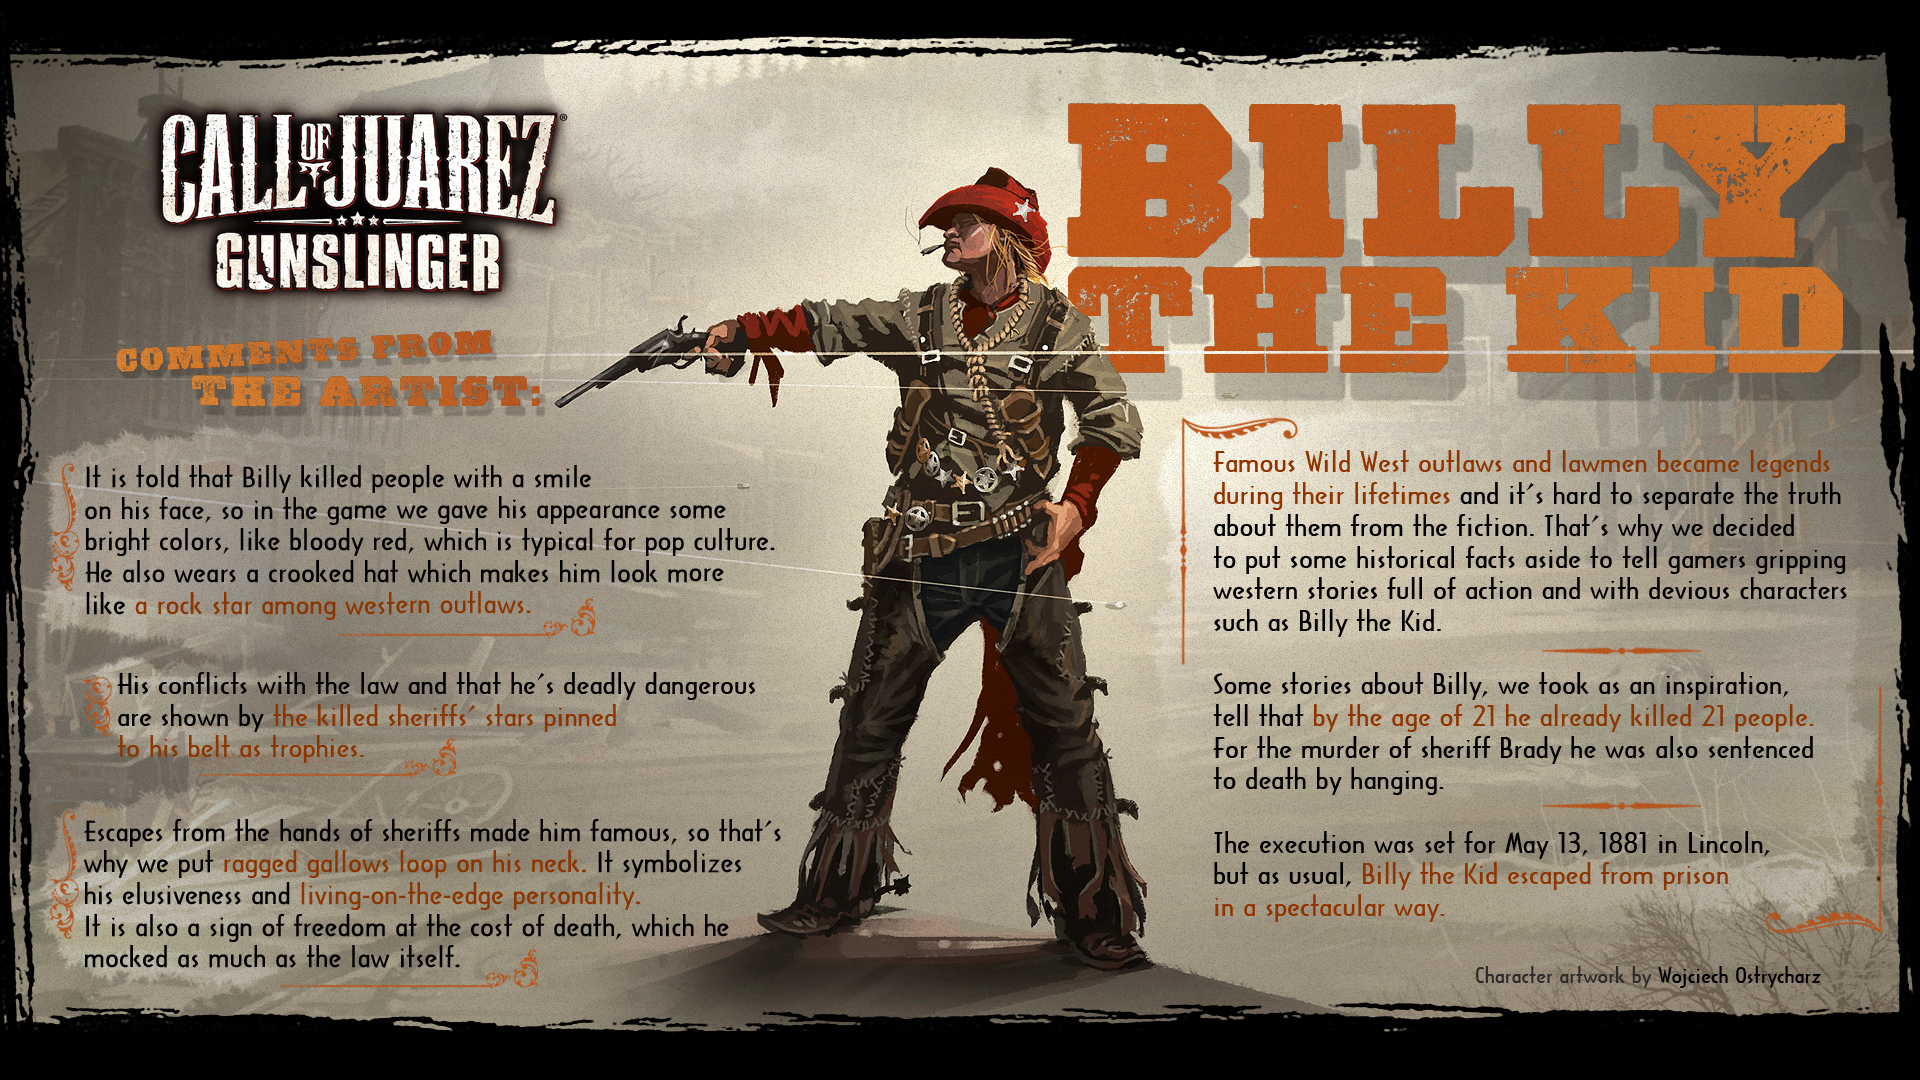 call of juarez wallpaper hd